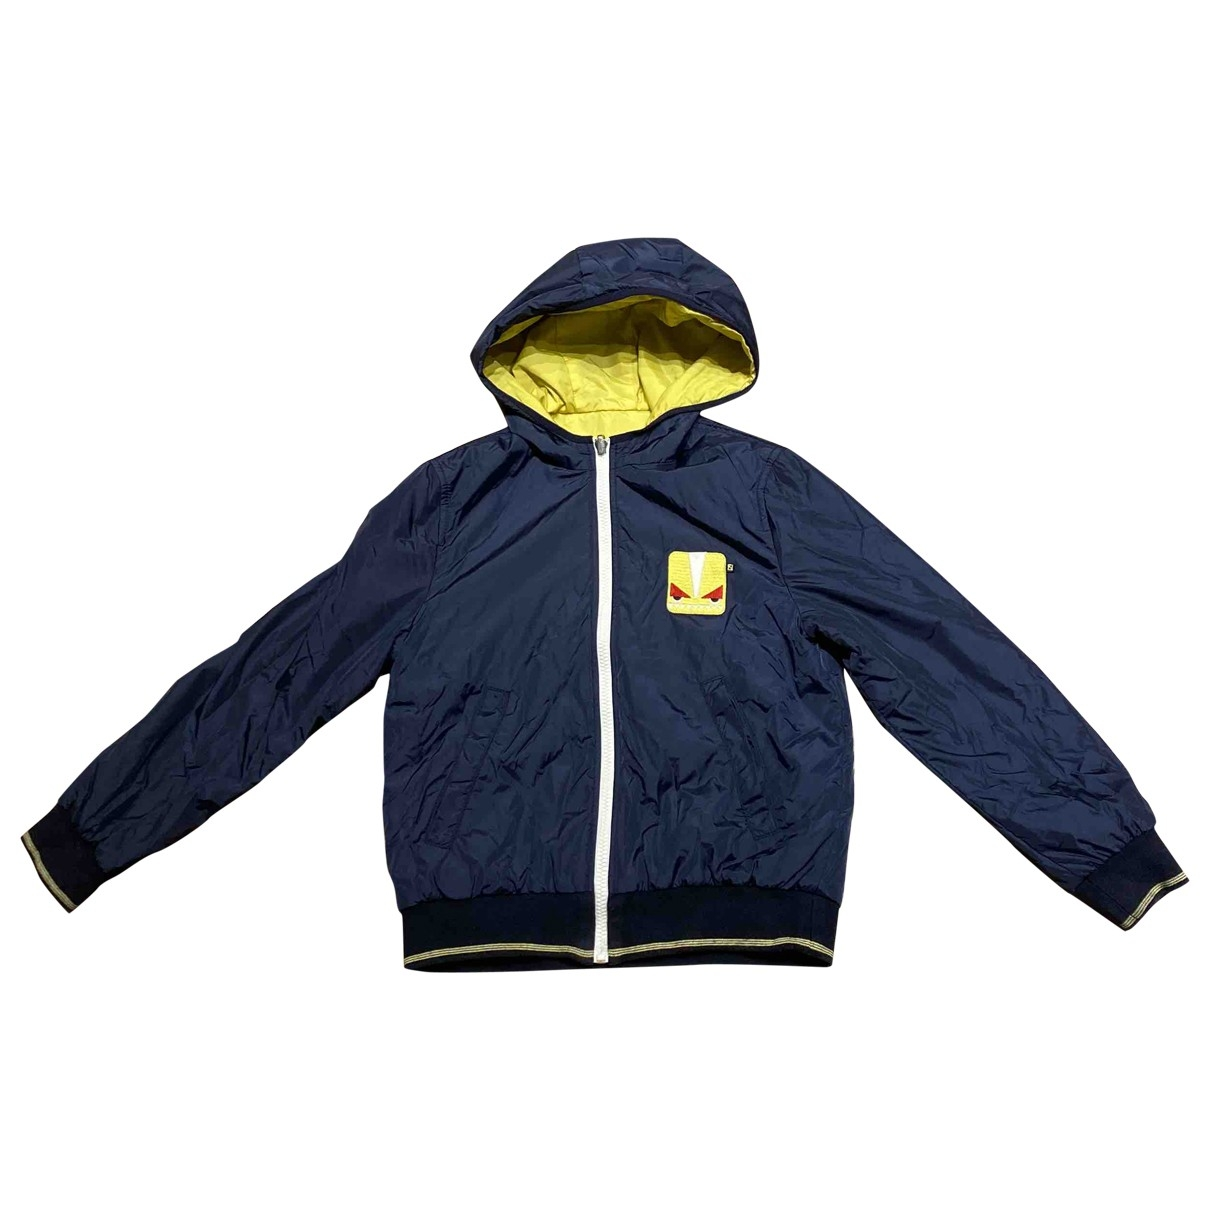 Fendi \N Blue jacket & coat for Kids 10 years - up to 142cm FR